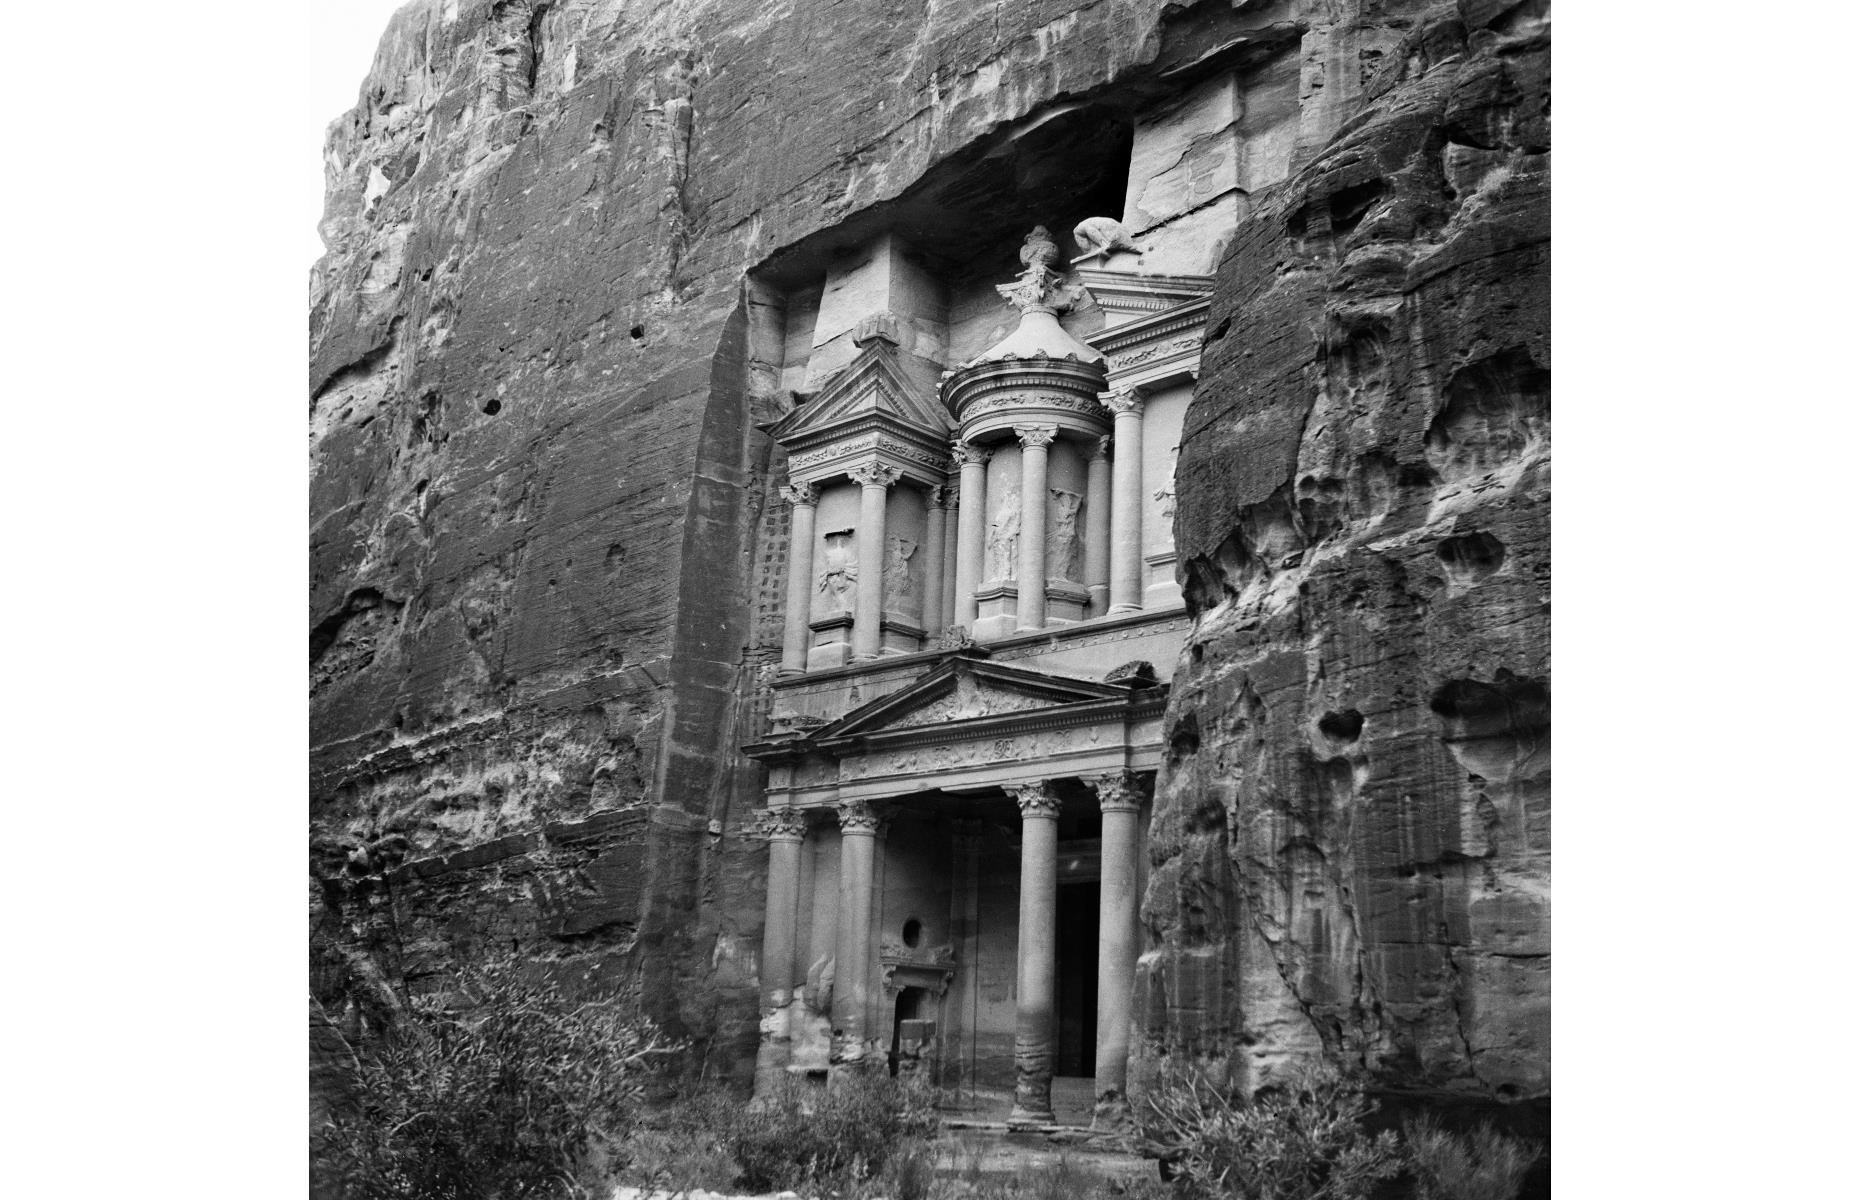 Slide 15 of 51: Carved into red, pink and blue sandstone among winding desert canyons, The Treasury (Al Khazneh) is part of the 'Lost City' of Petra. This prehistoric settlement, pictured in 1900, was once the capital of the Nabataean Empire, which controlled a vast swathe of the Middle East before being absorbed by the Roman Empire.It was declared a UNESCO World Heritage Site in 1985 and since then tourism has been on the rise. Now take a look at the amazing lost cities we've only just discovered.